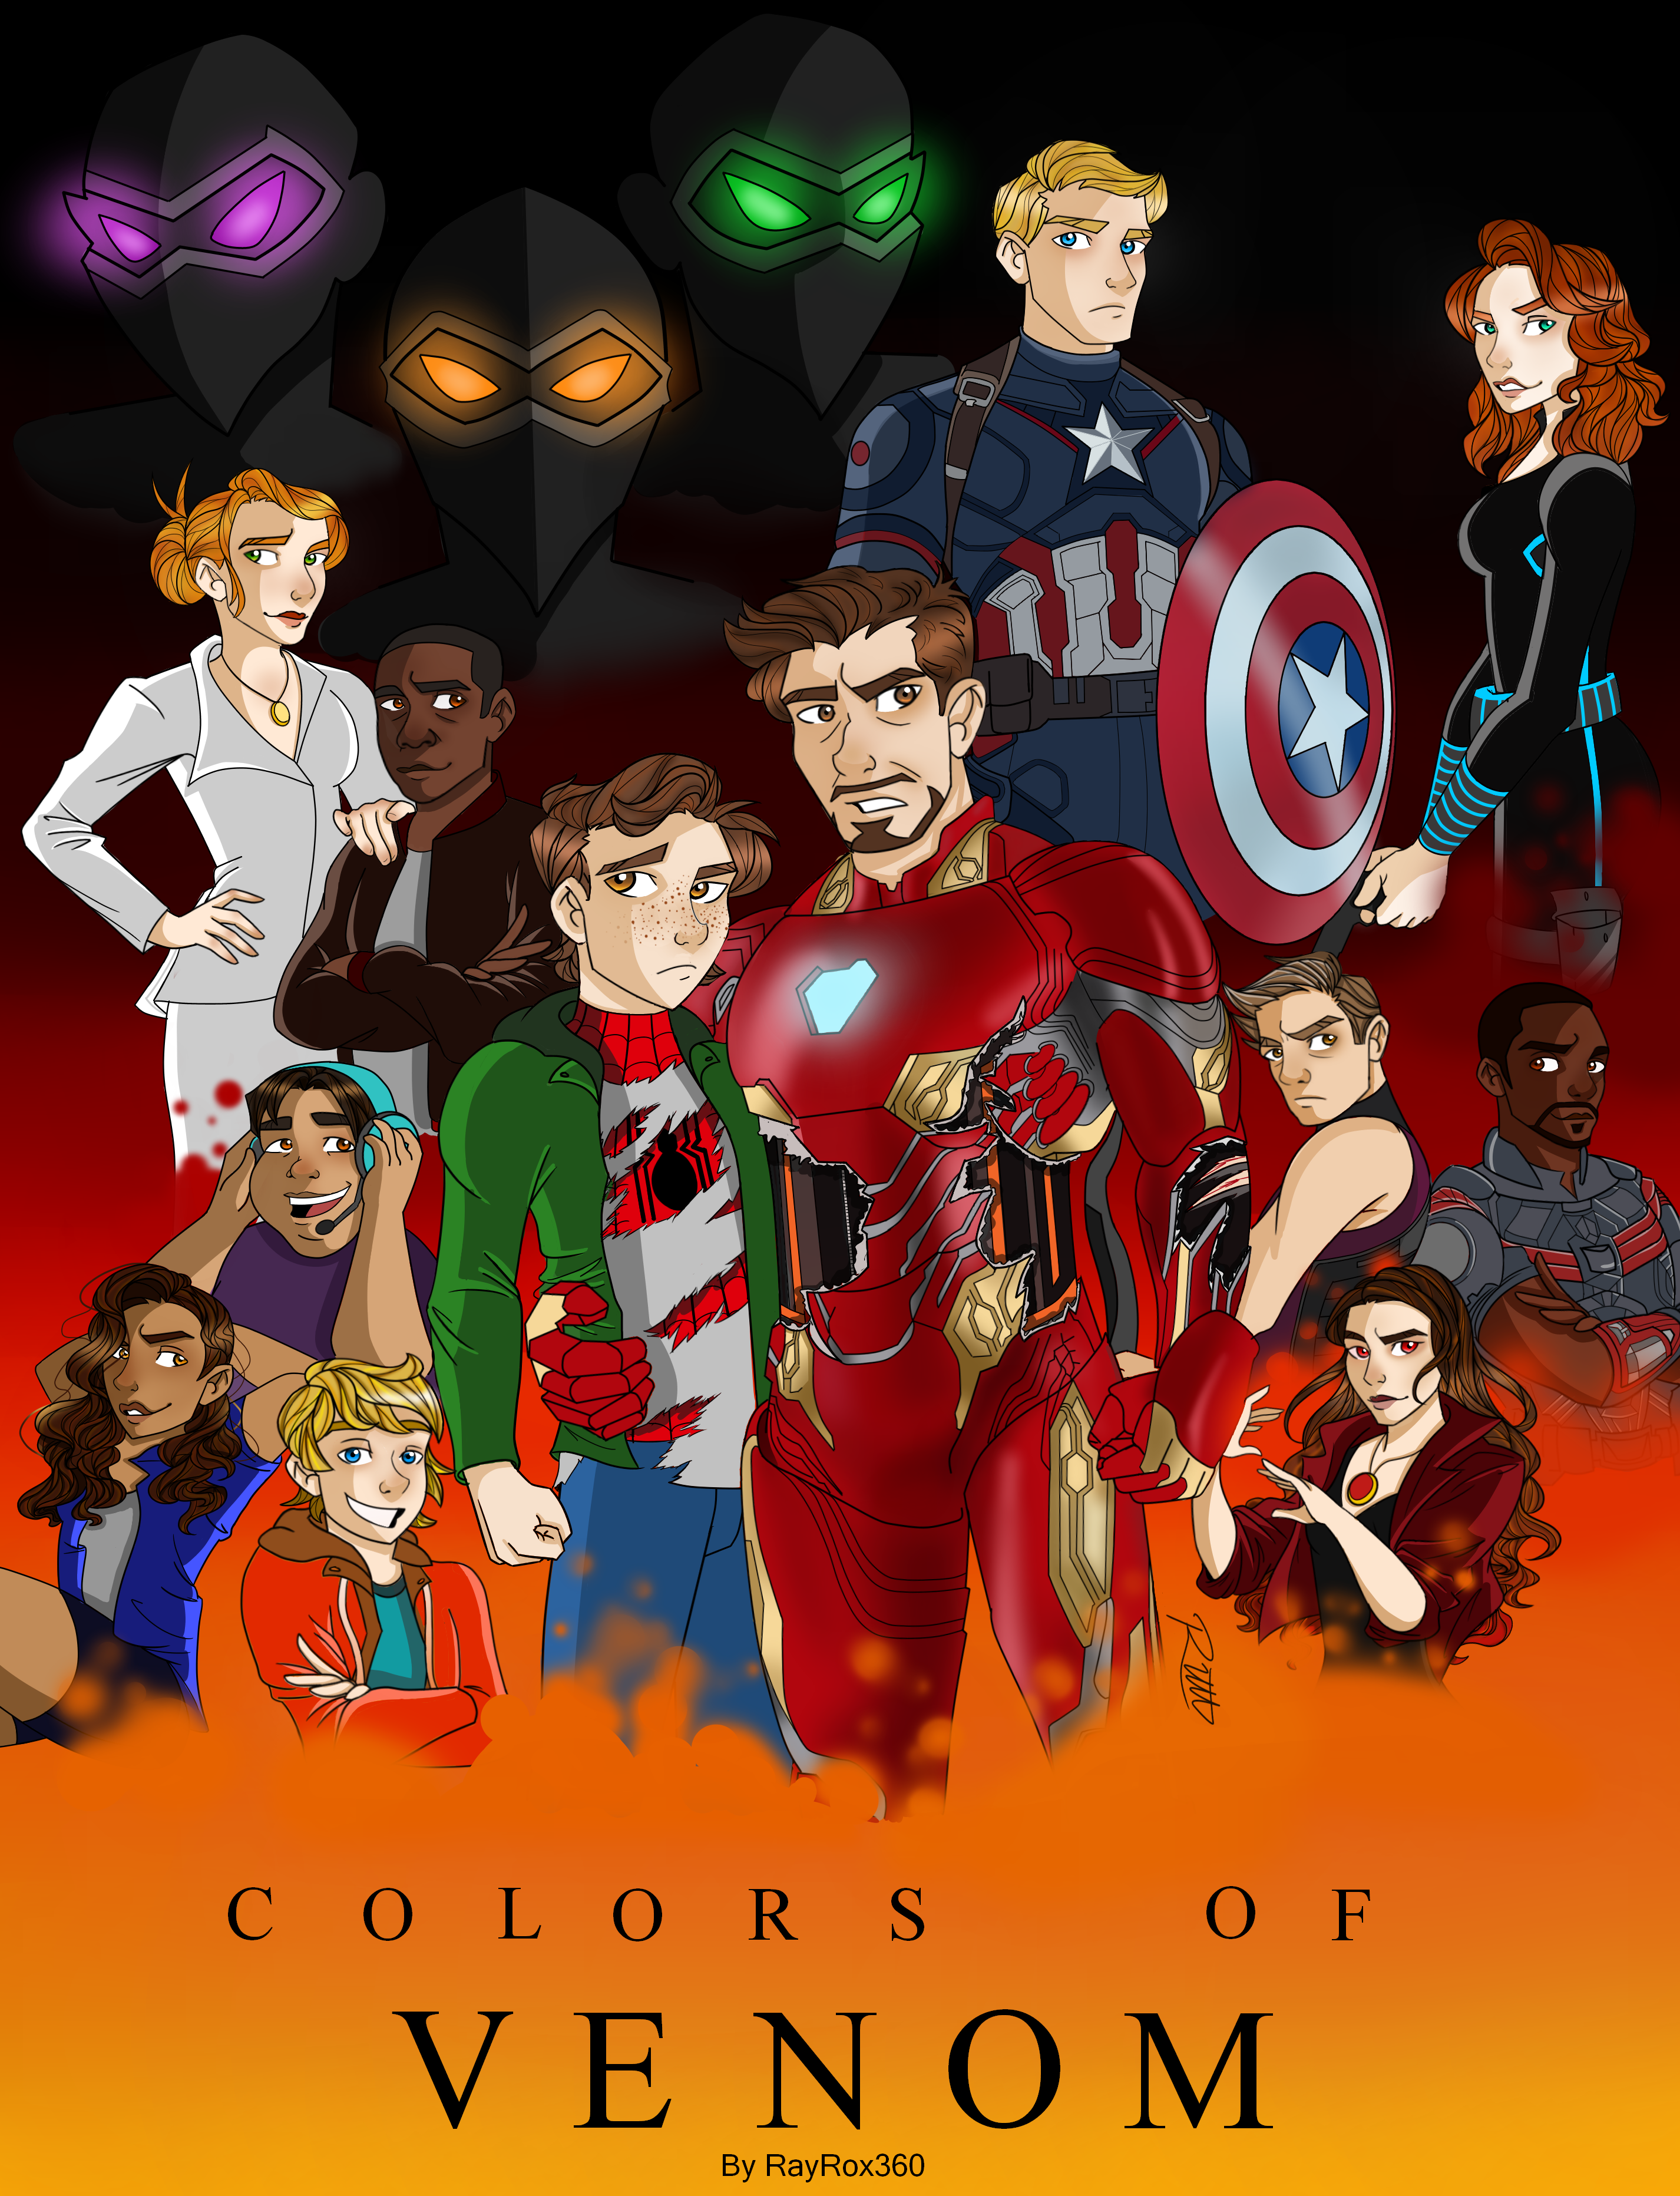 Colors of Venom Fanfic Cover by RayRox360 - Tony Stark and Peter